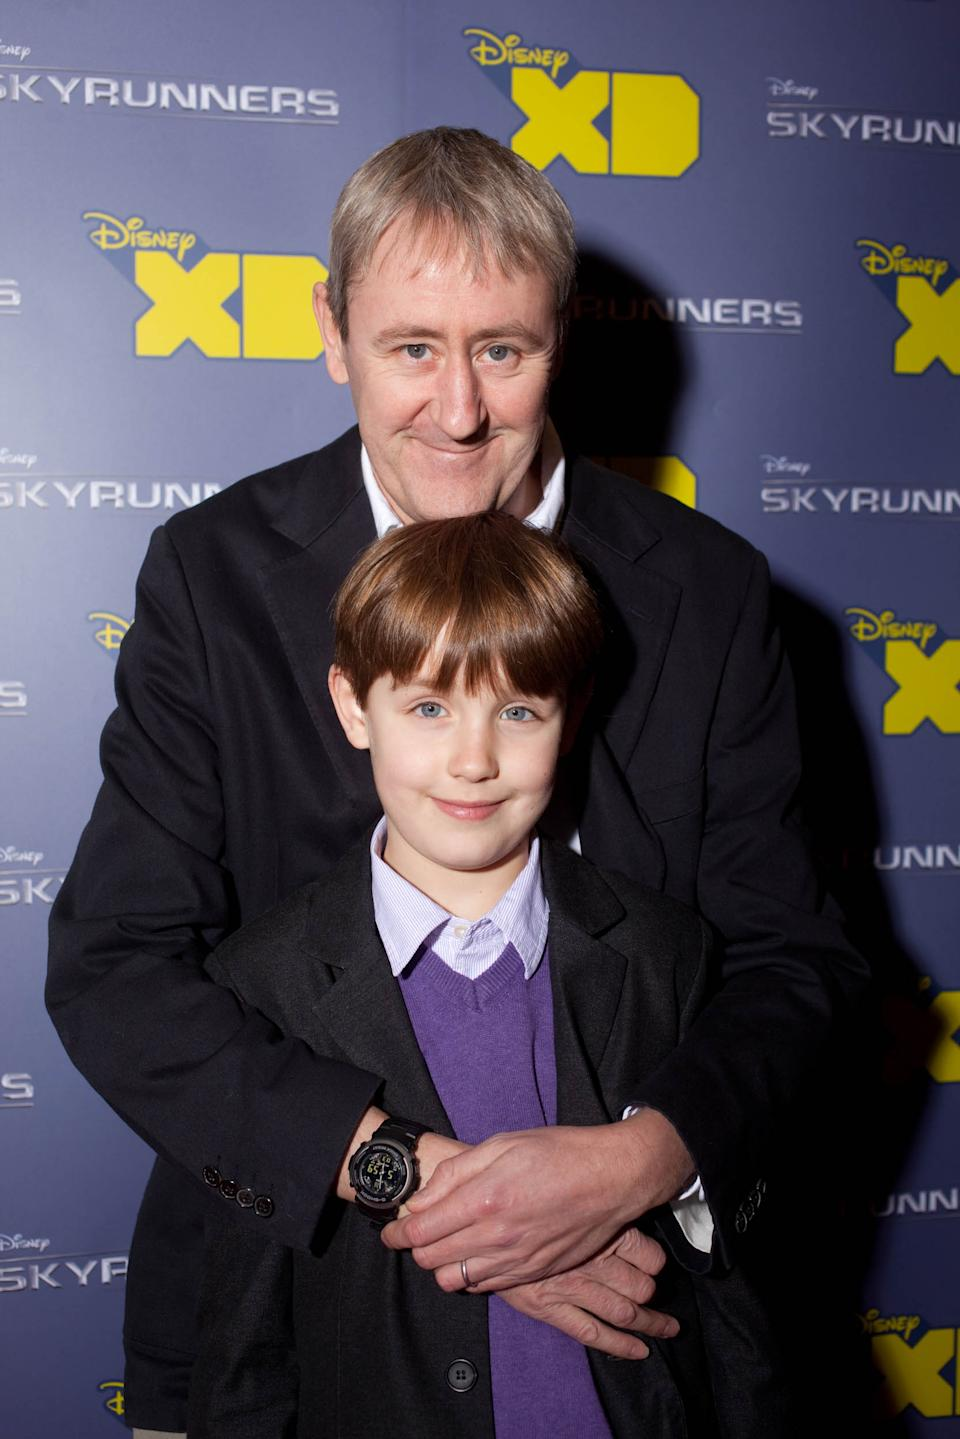 "SKYRUNNERS - 26 January 2010 - Nicholas Lyndhurst attends the London screening of the Disney XD Original Movie, ""Skyrunners"" with his son. ""Skyrunners"" premieres on Disney XD at 5.30pm on February 12th. (Photo by Nick Ray/Disney XD via Getty Images)"